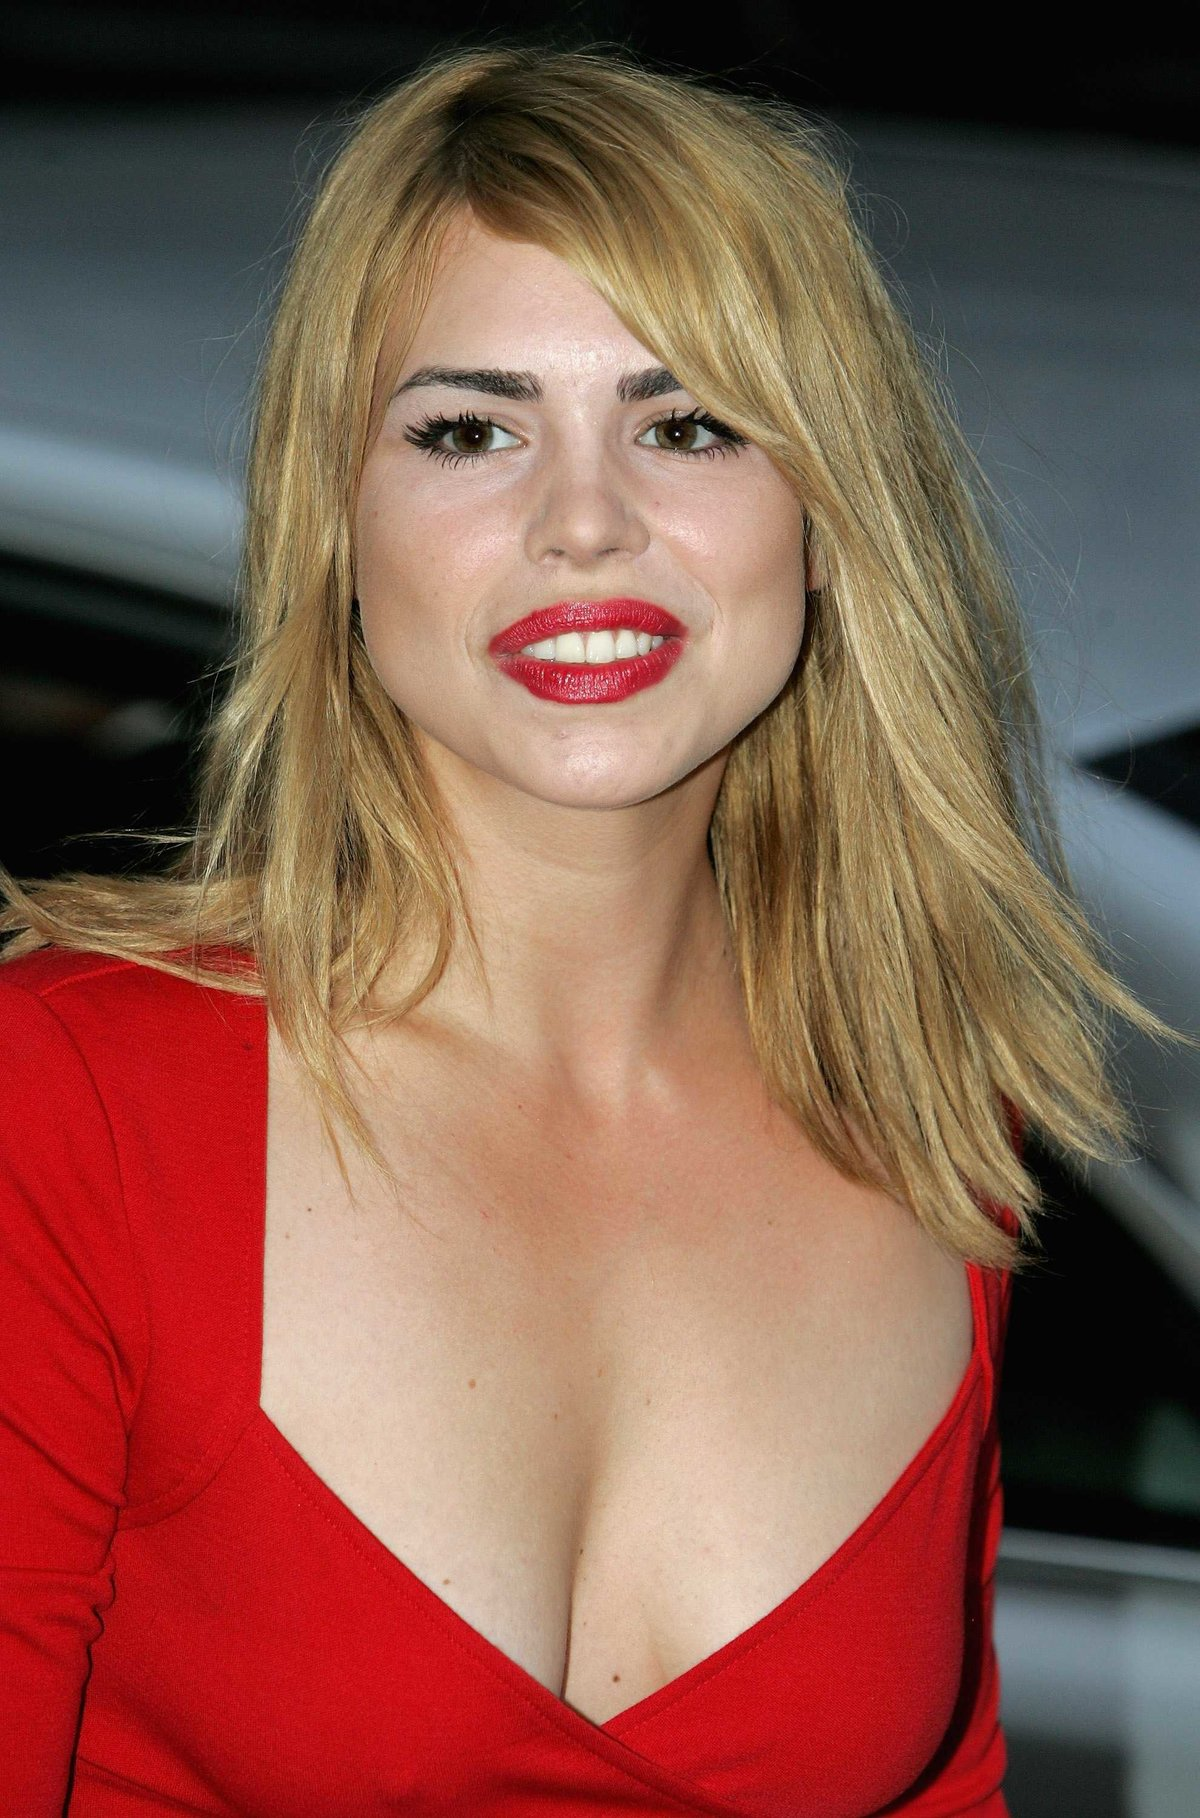 Celebrity Billie Piper nude (51 photos), Tits, Sideboobs, Twitter, see through 2006